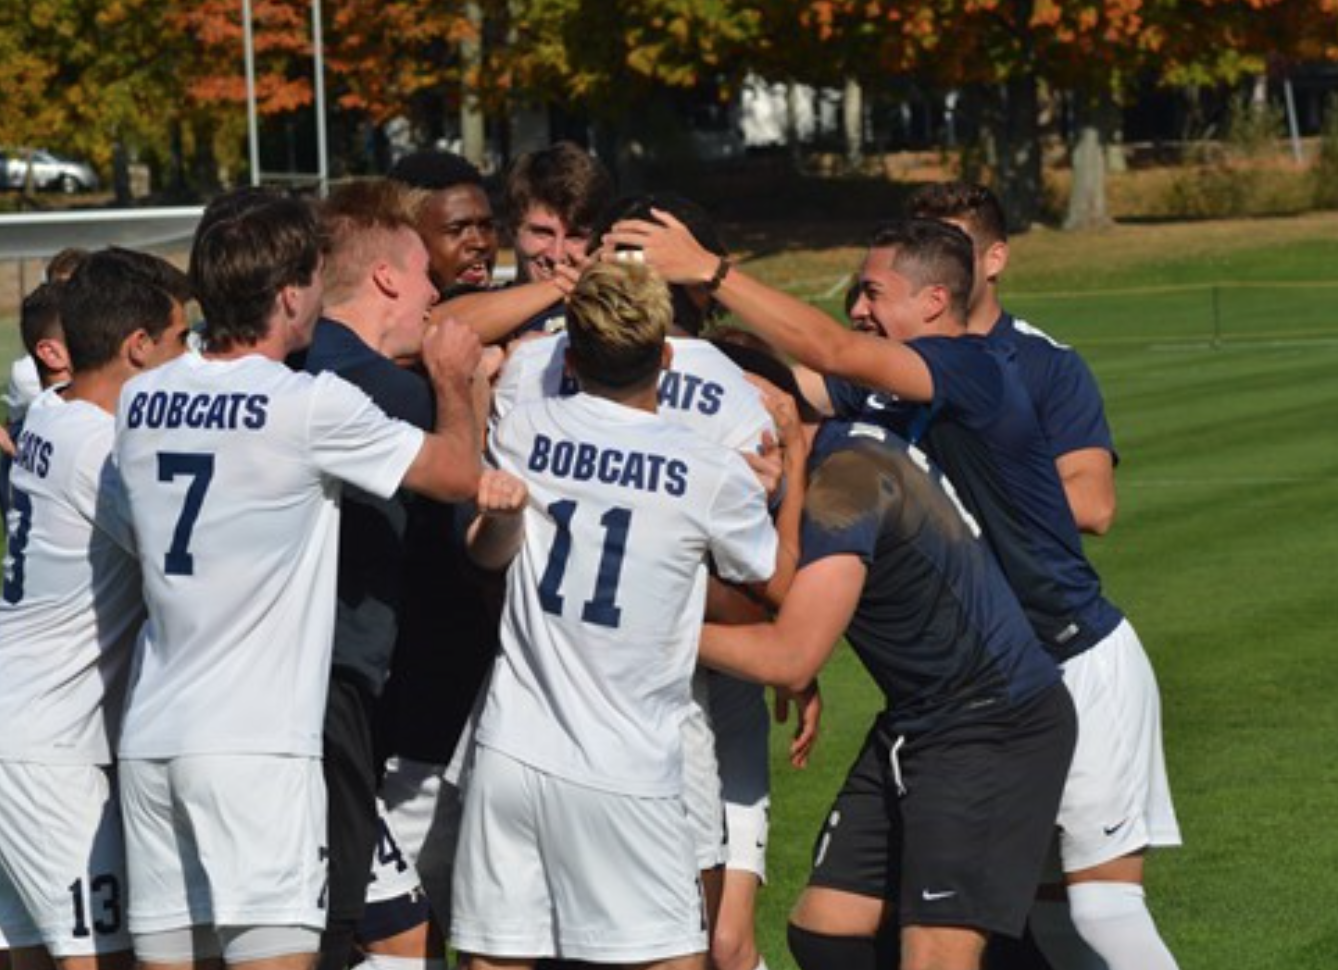 Quinnipiac downs Canisius 3-1, advances to MAAC Championship game